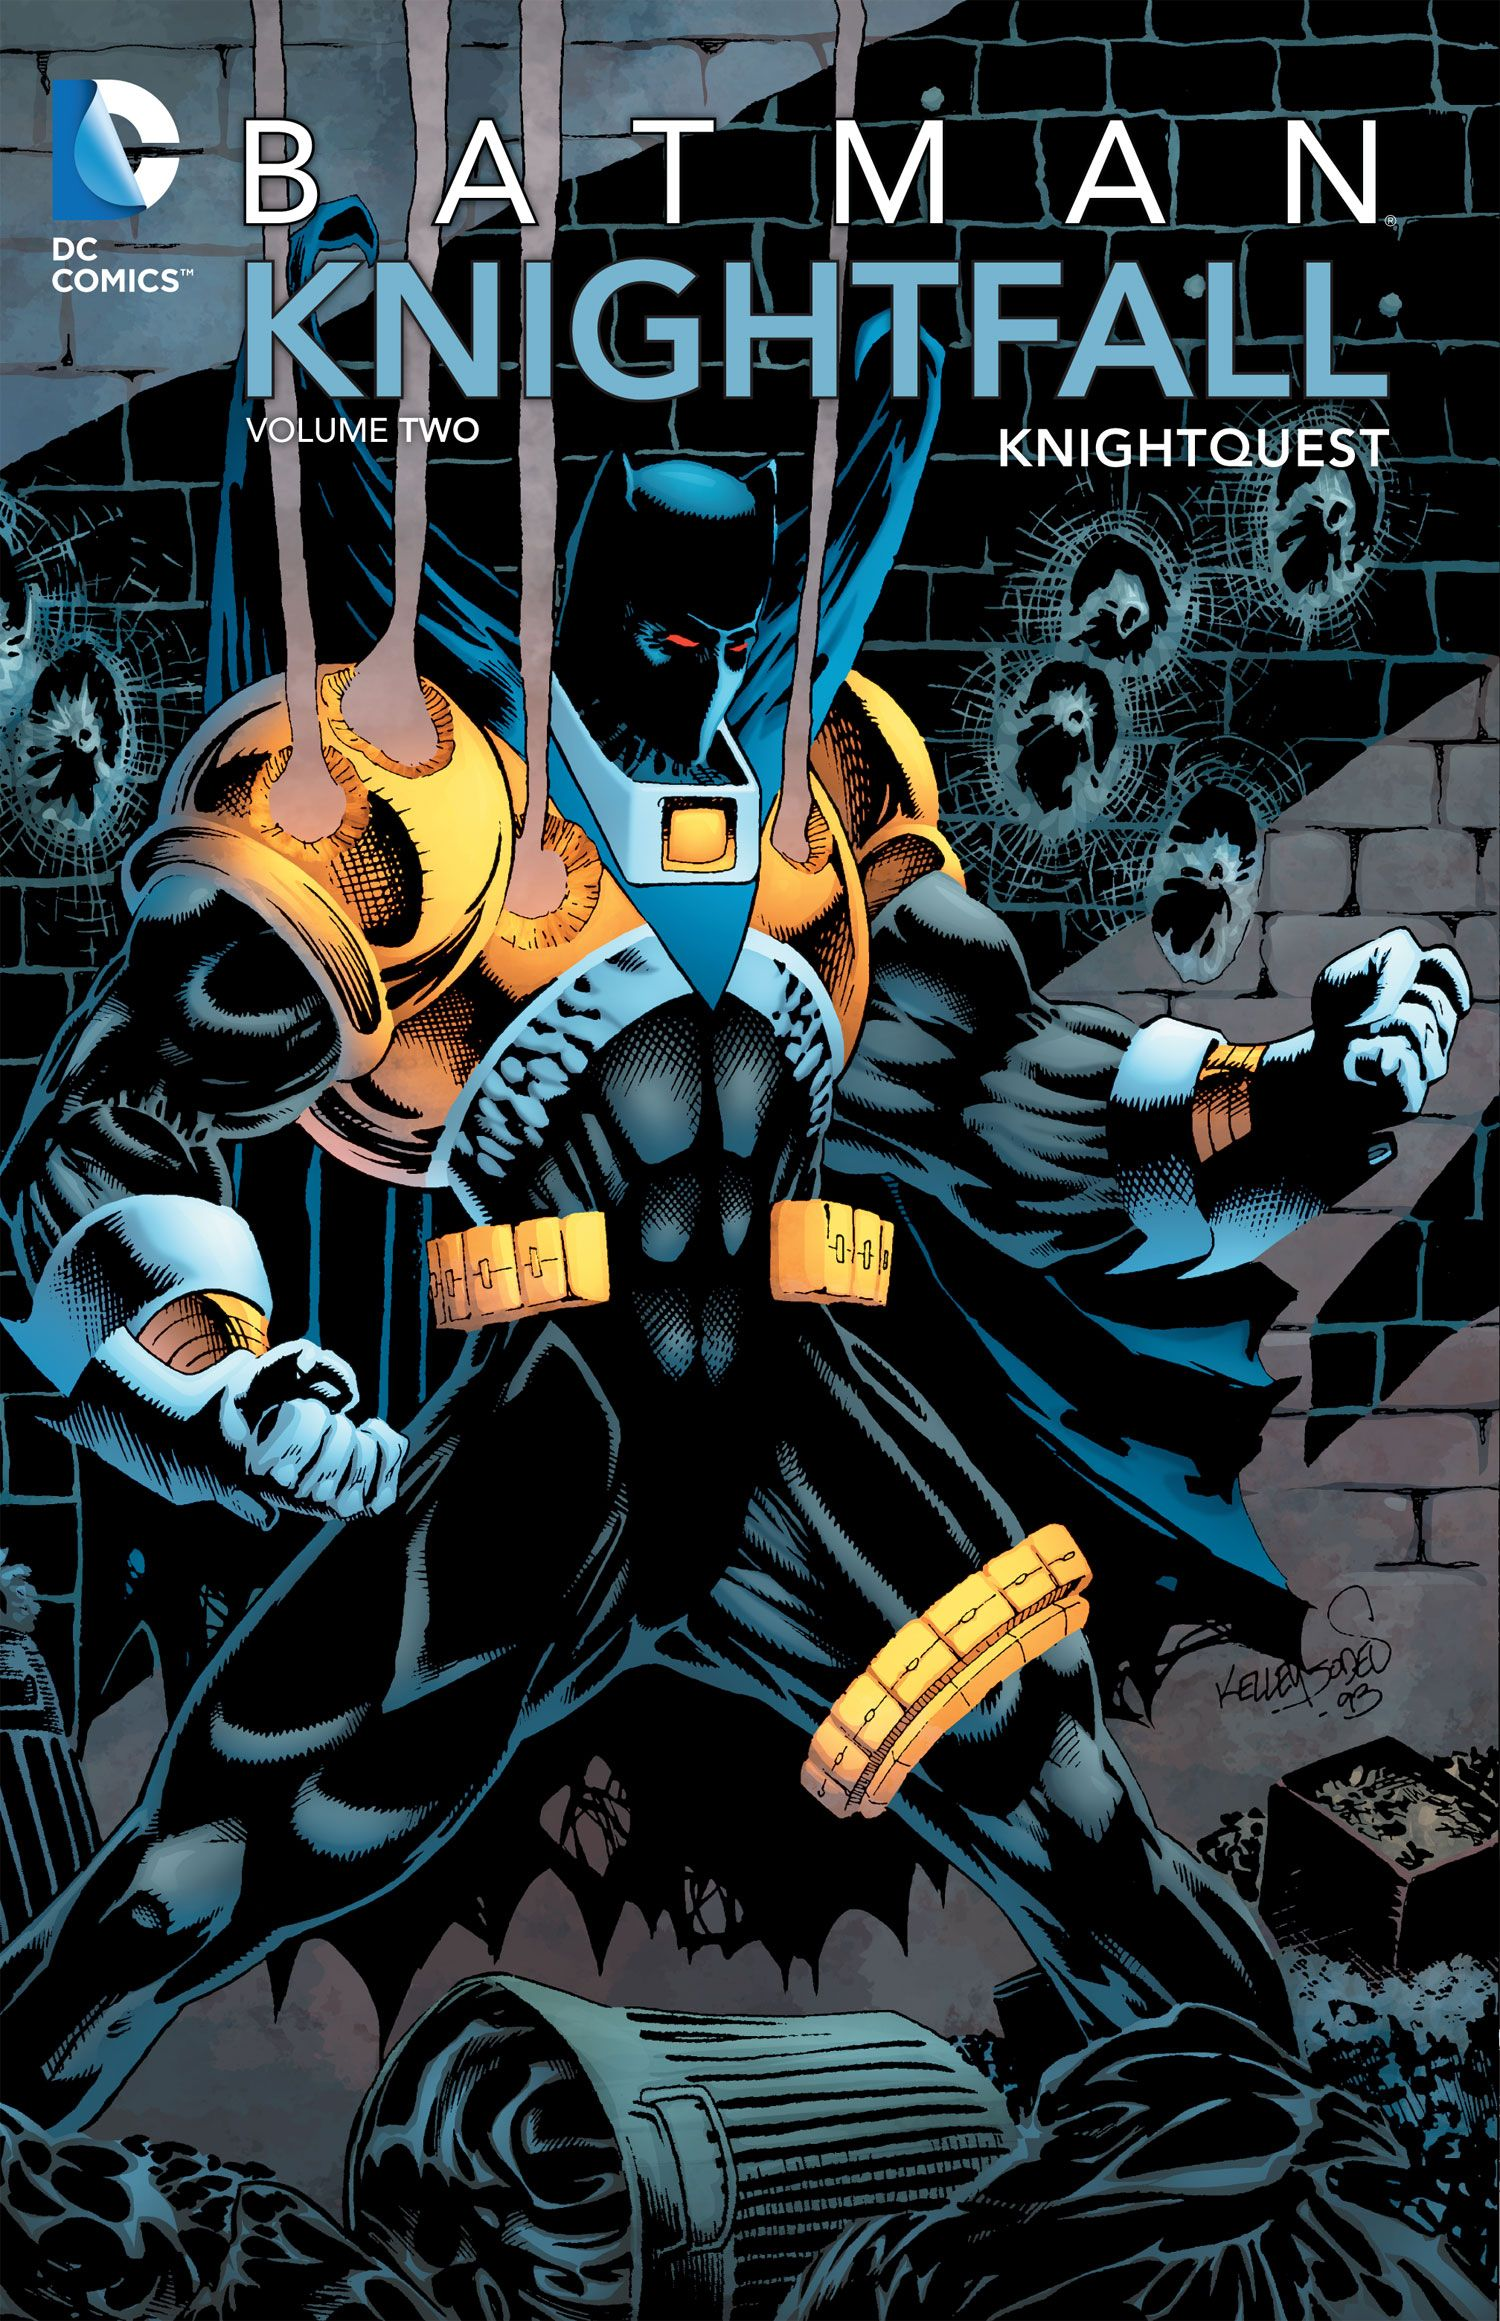 Batman Knightfall Vol 2 Review With Images Batman Comics